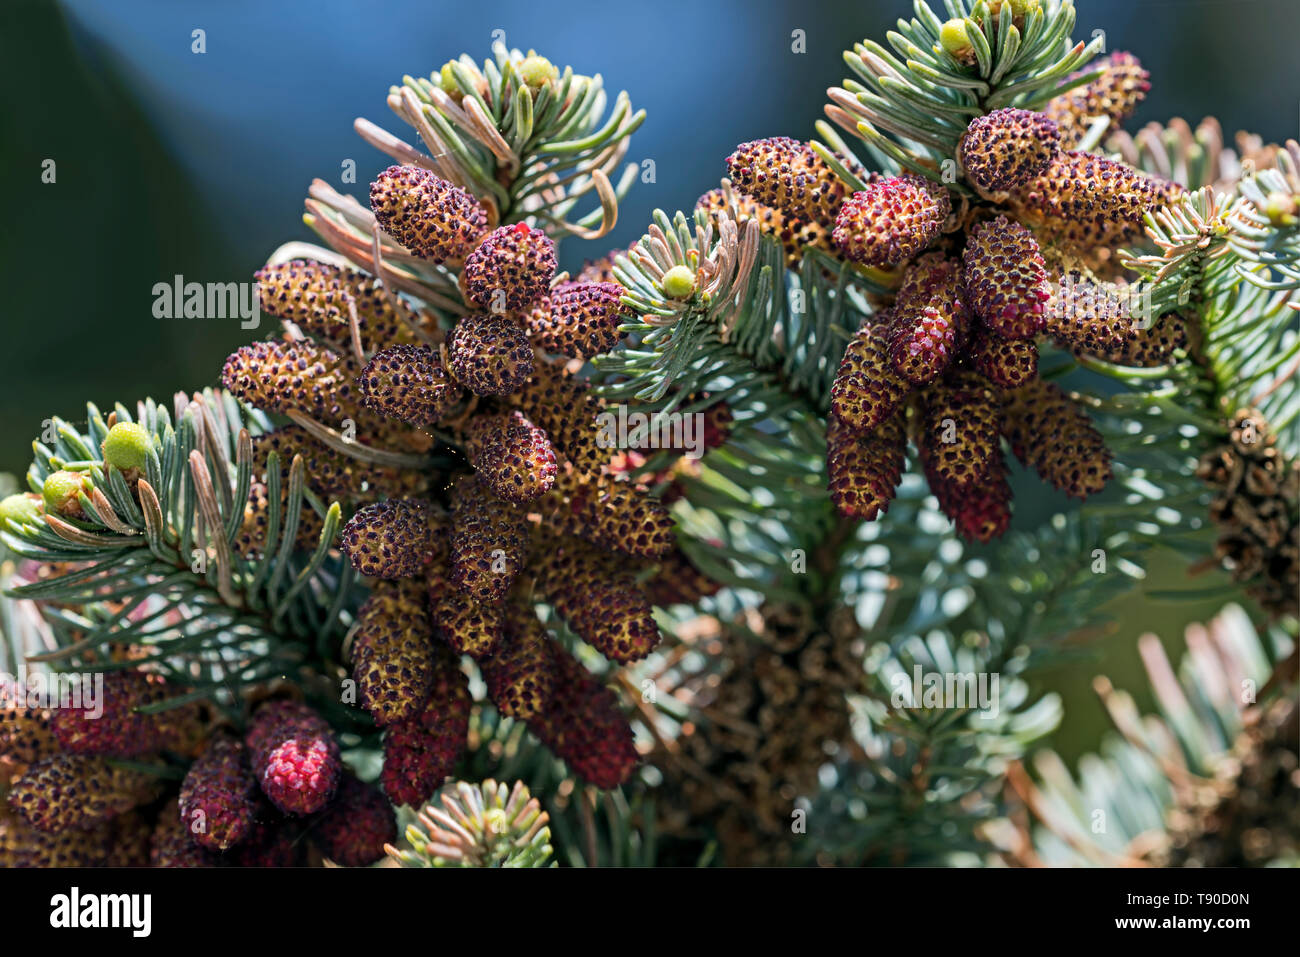 Branches of Abies cephalonica, Greek fir, bearing male flowers in the act of shedding pollen. - Stock Image